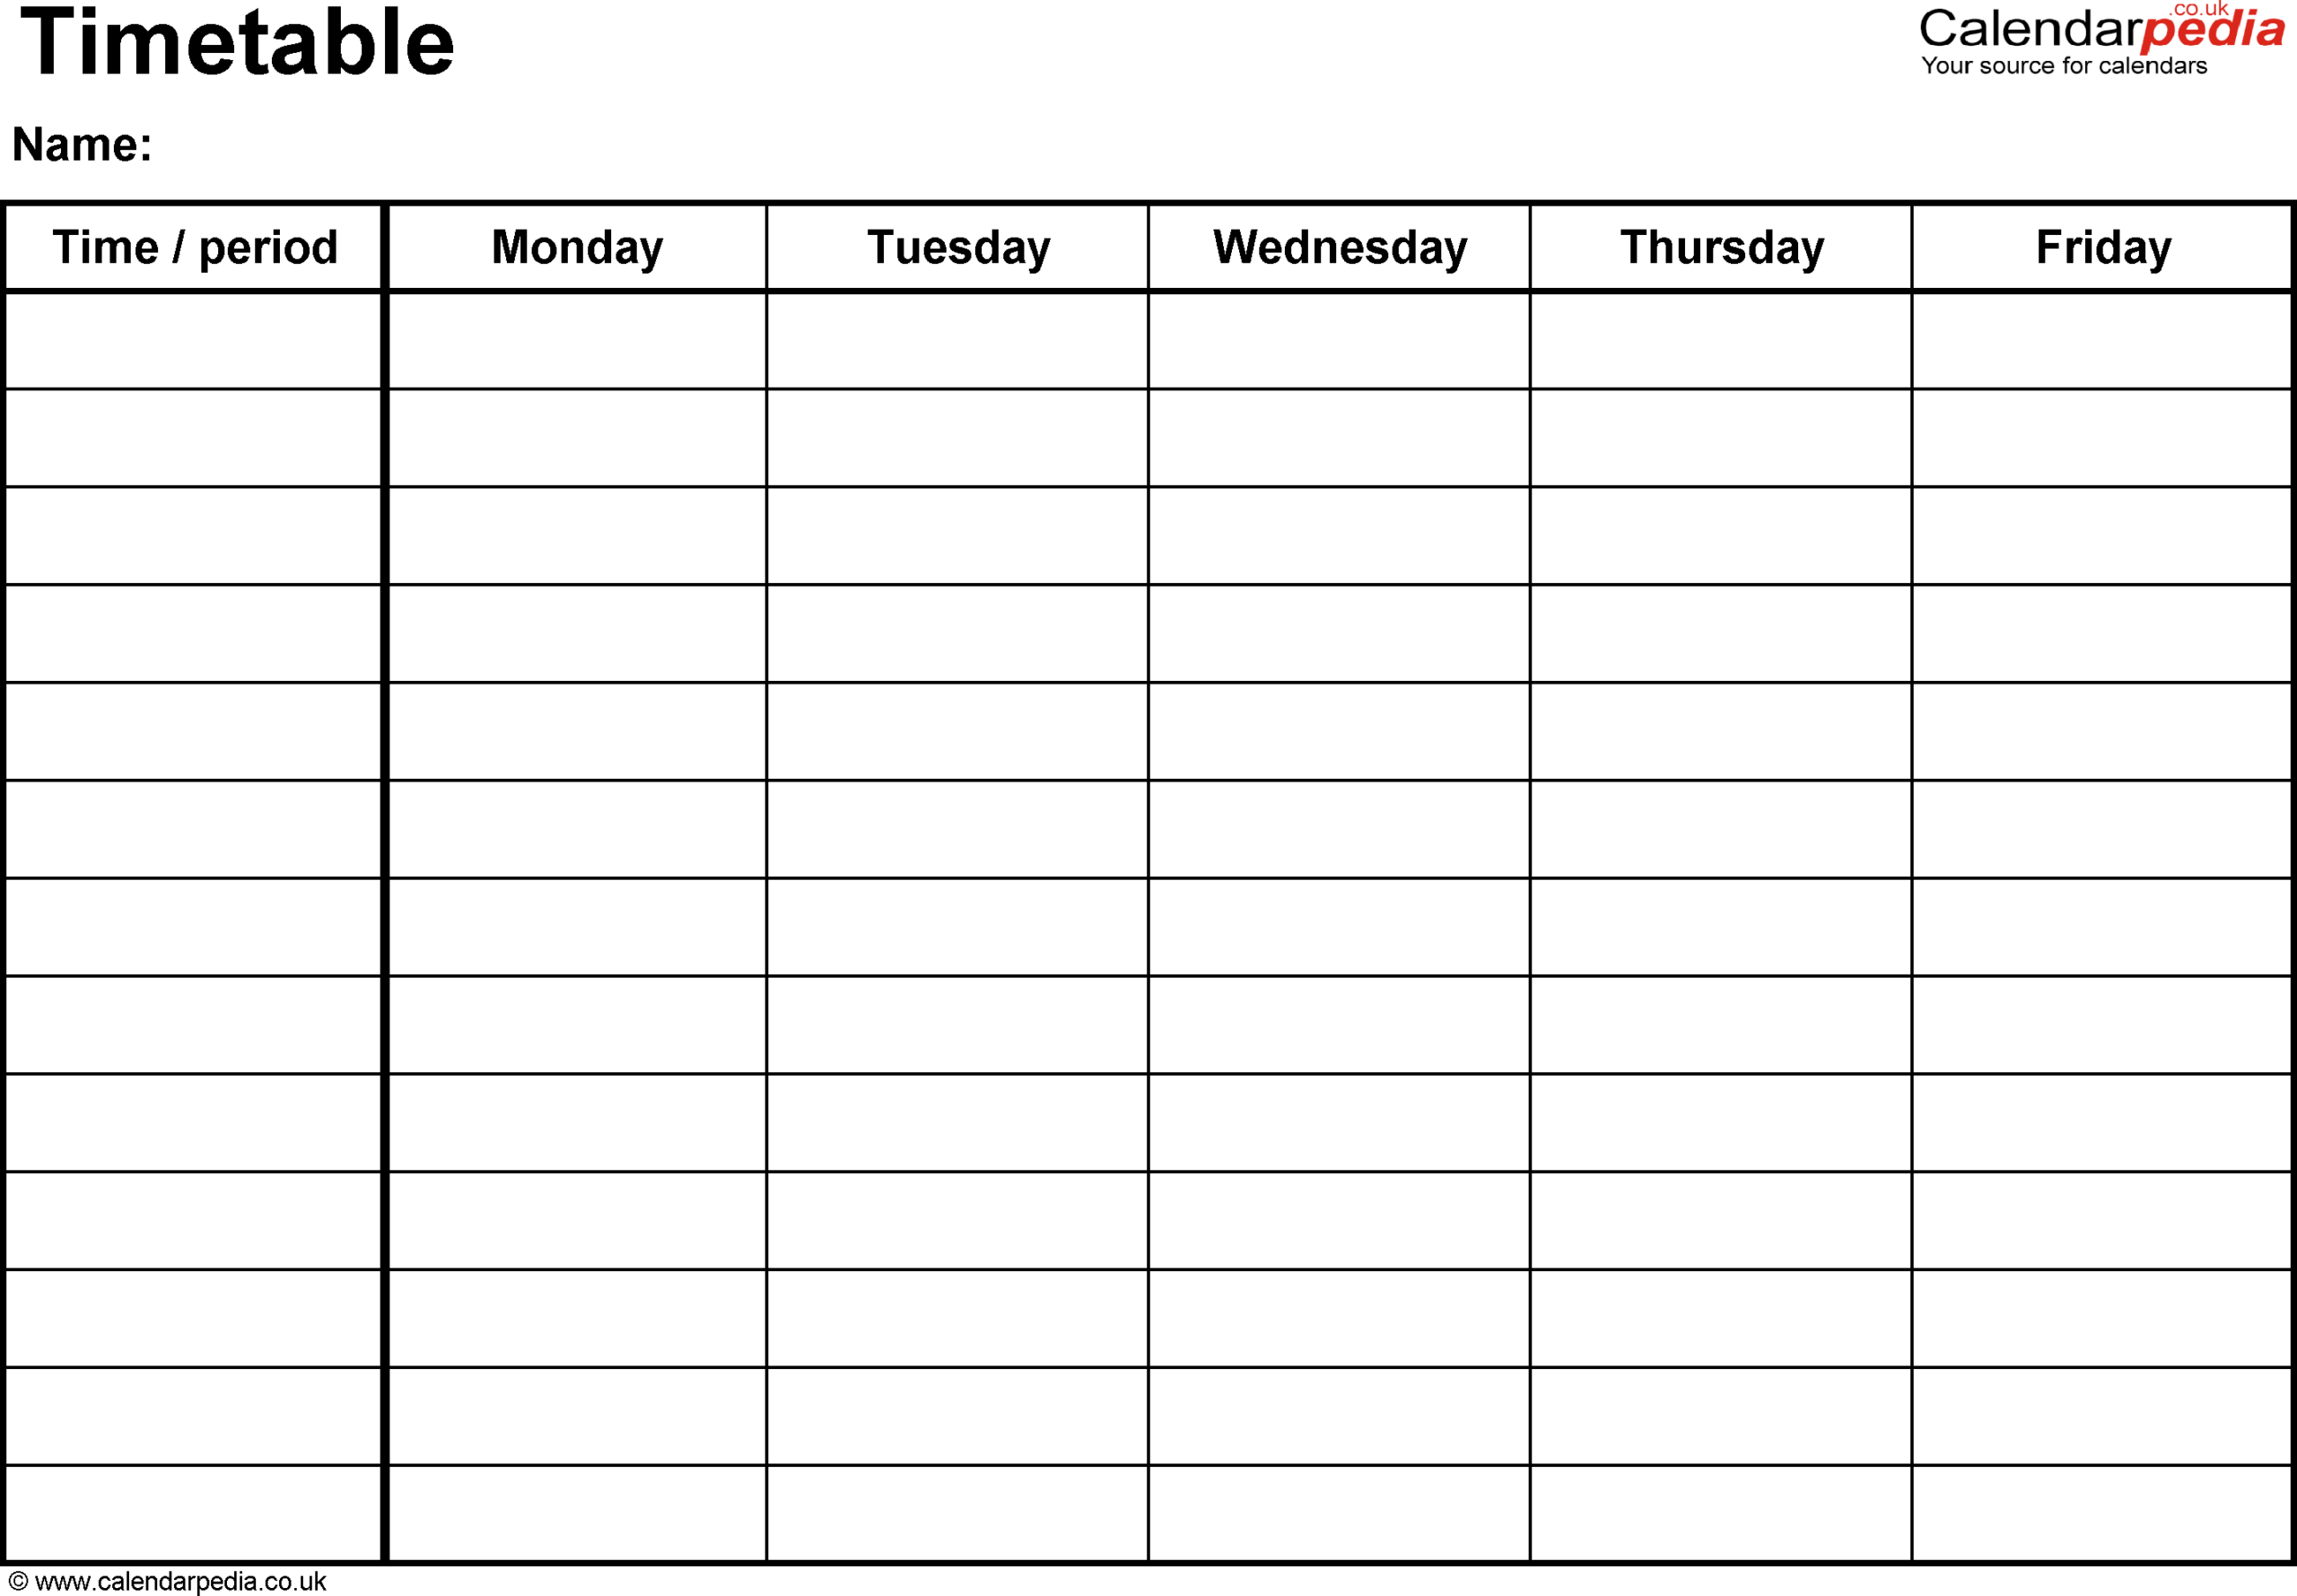 Timetable Templates For Microsoft Word - Free And Printable regarding Blank Revision Timetable Template